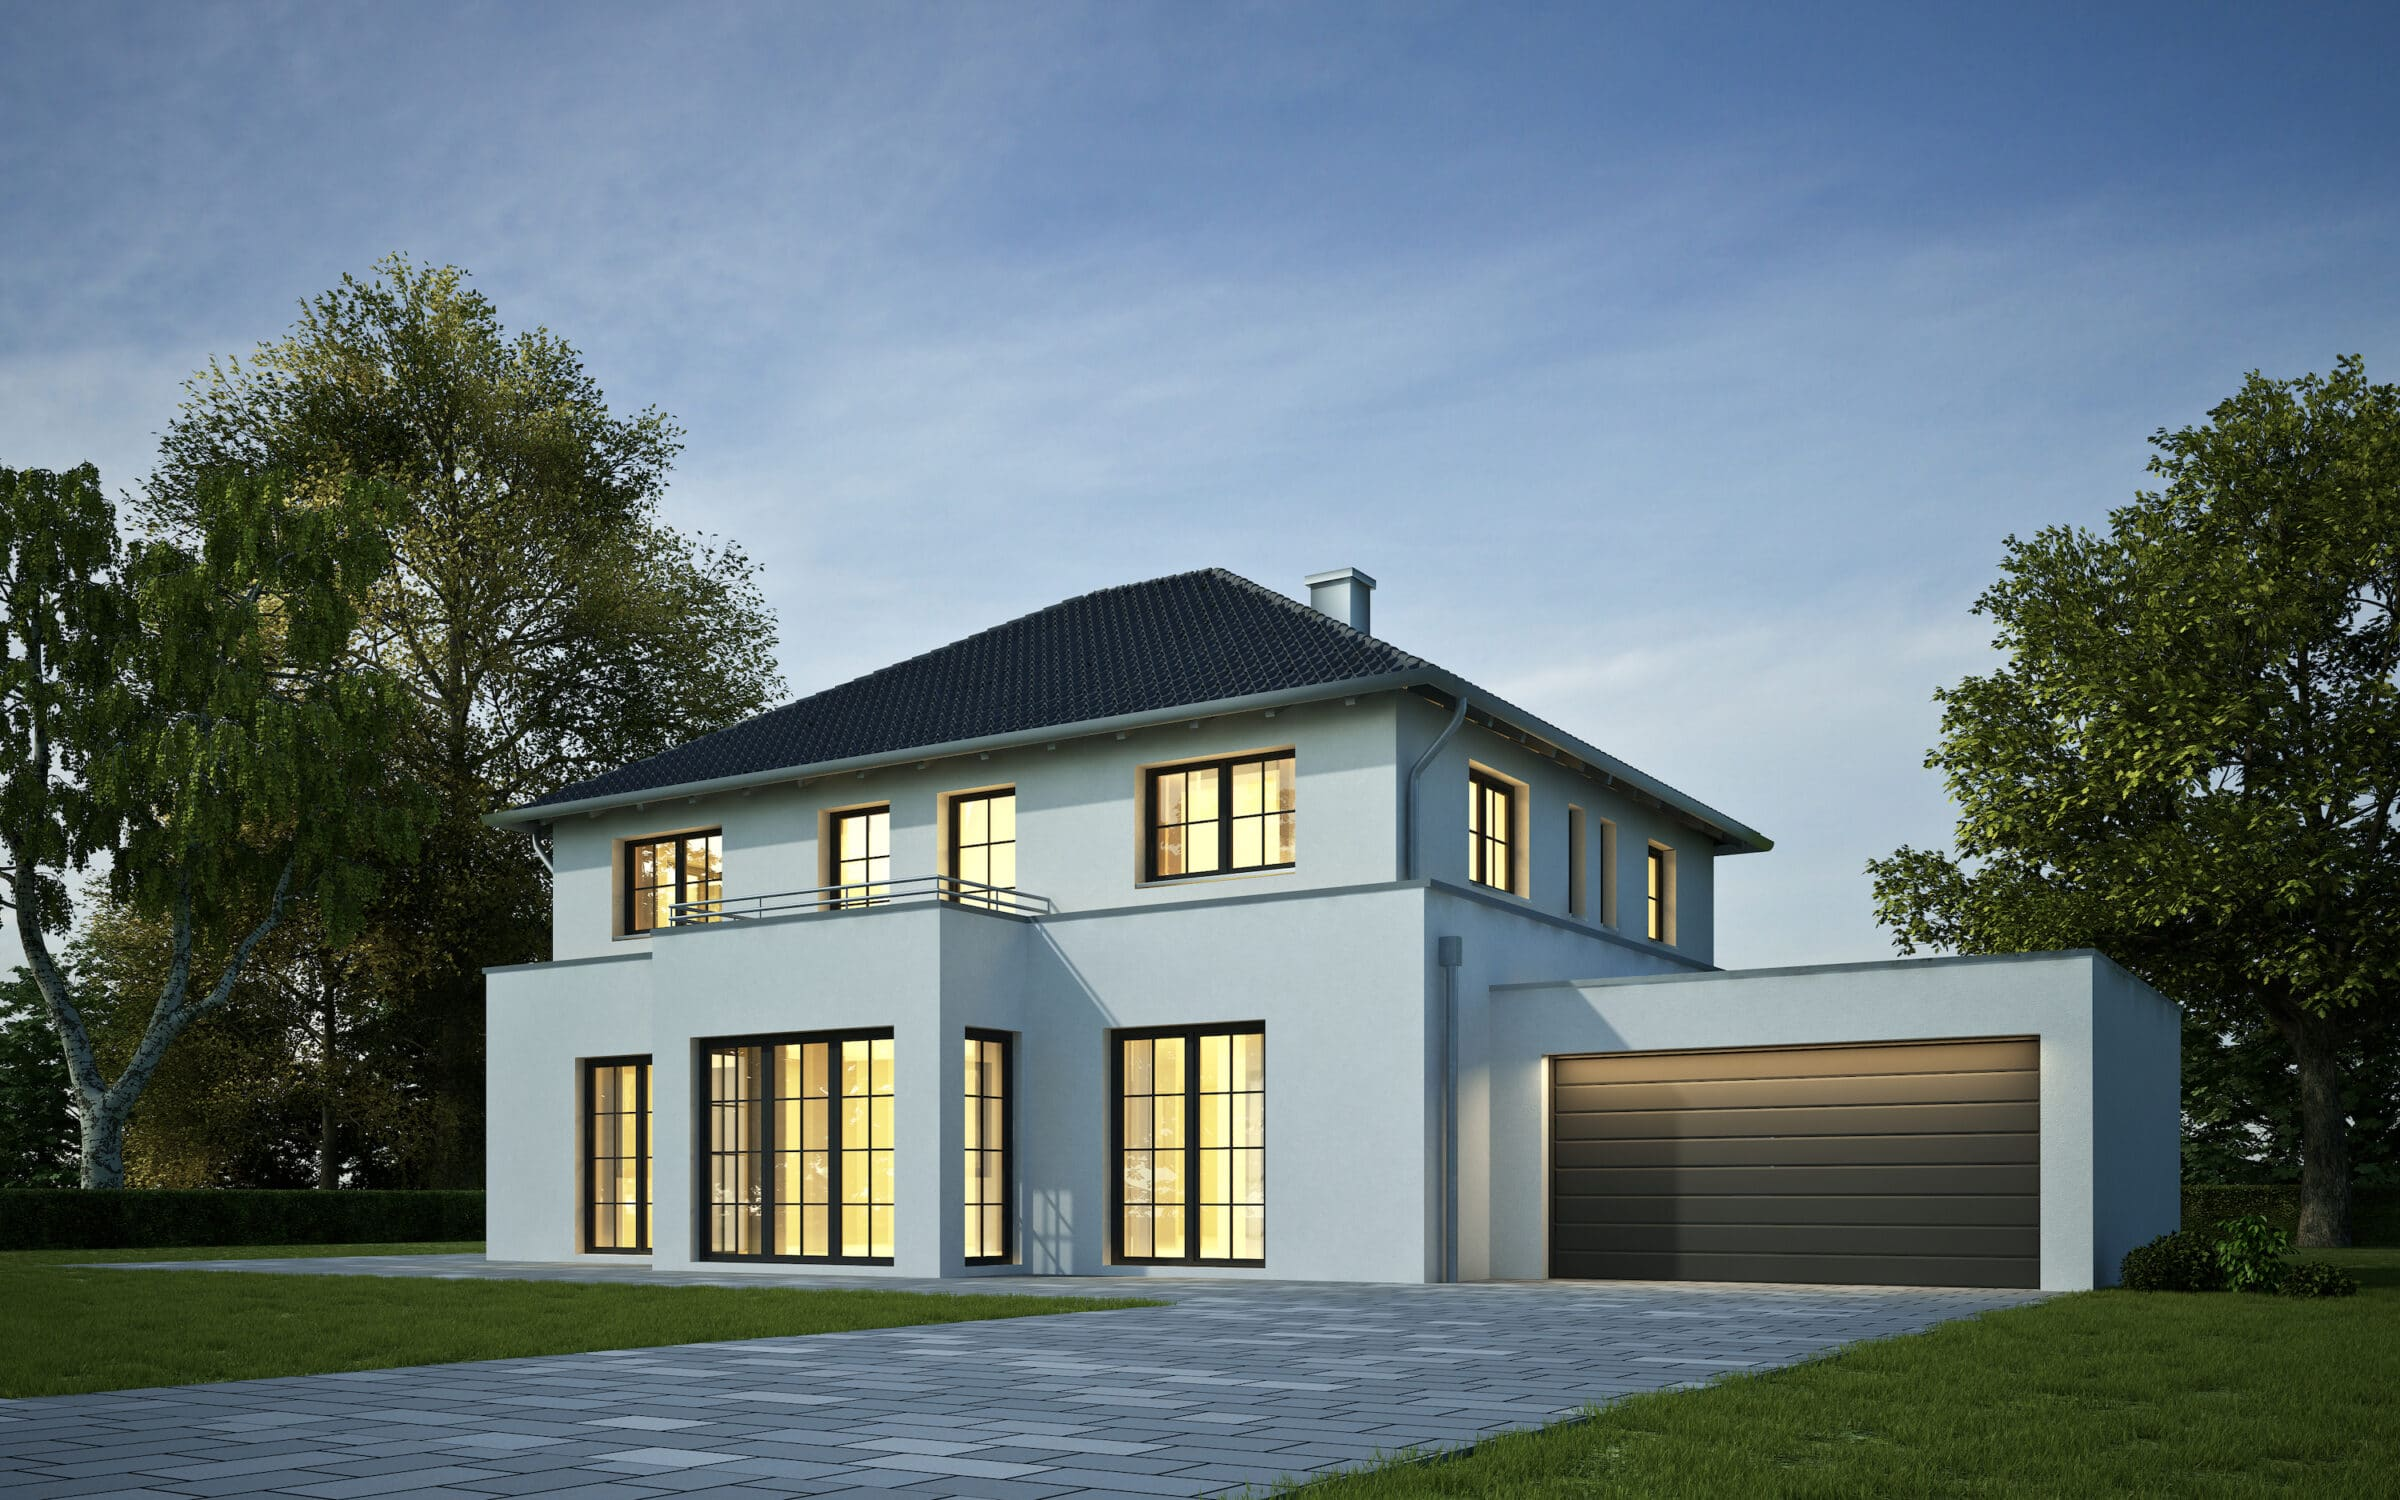 information about buying steel-look windows in aluminium